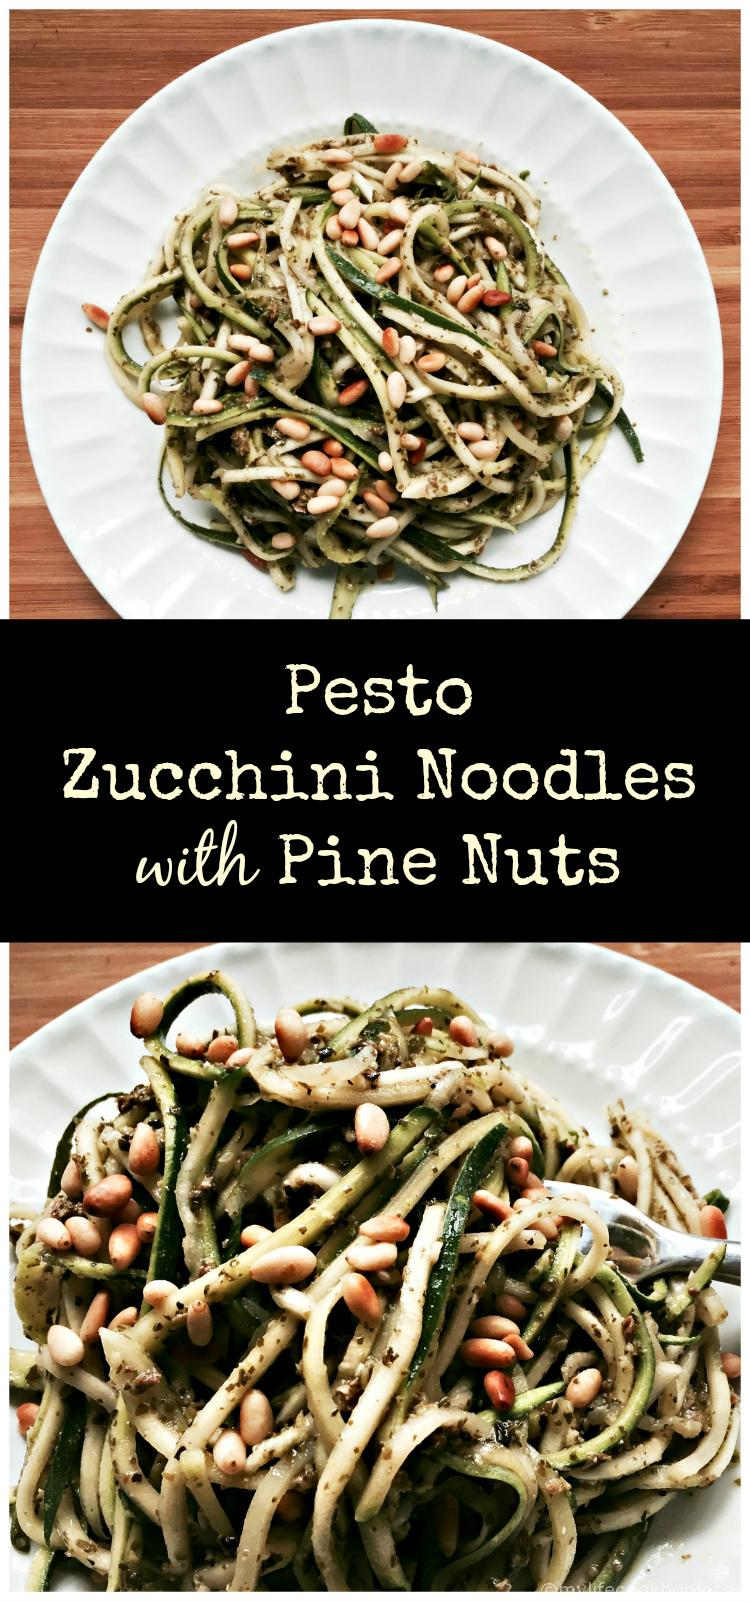 These zucchini noodles taste perfect with a prepared pesto and sprinkled with pine nuts for a healthy dinner that tastes great!